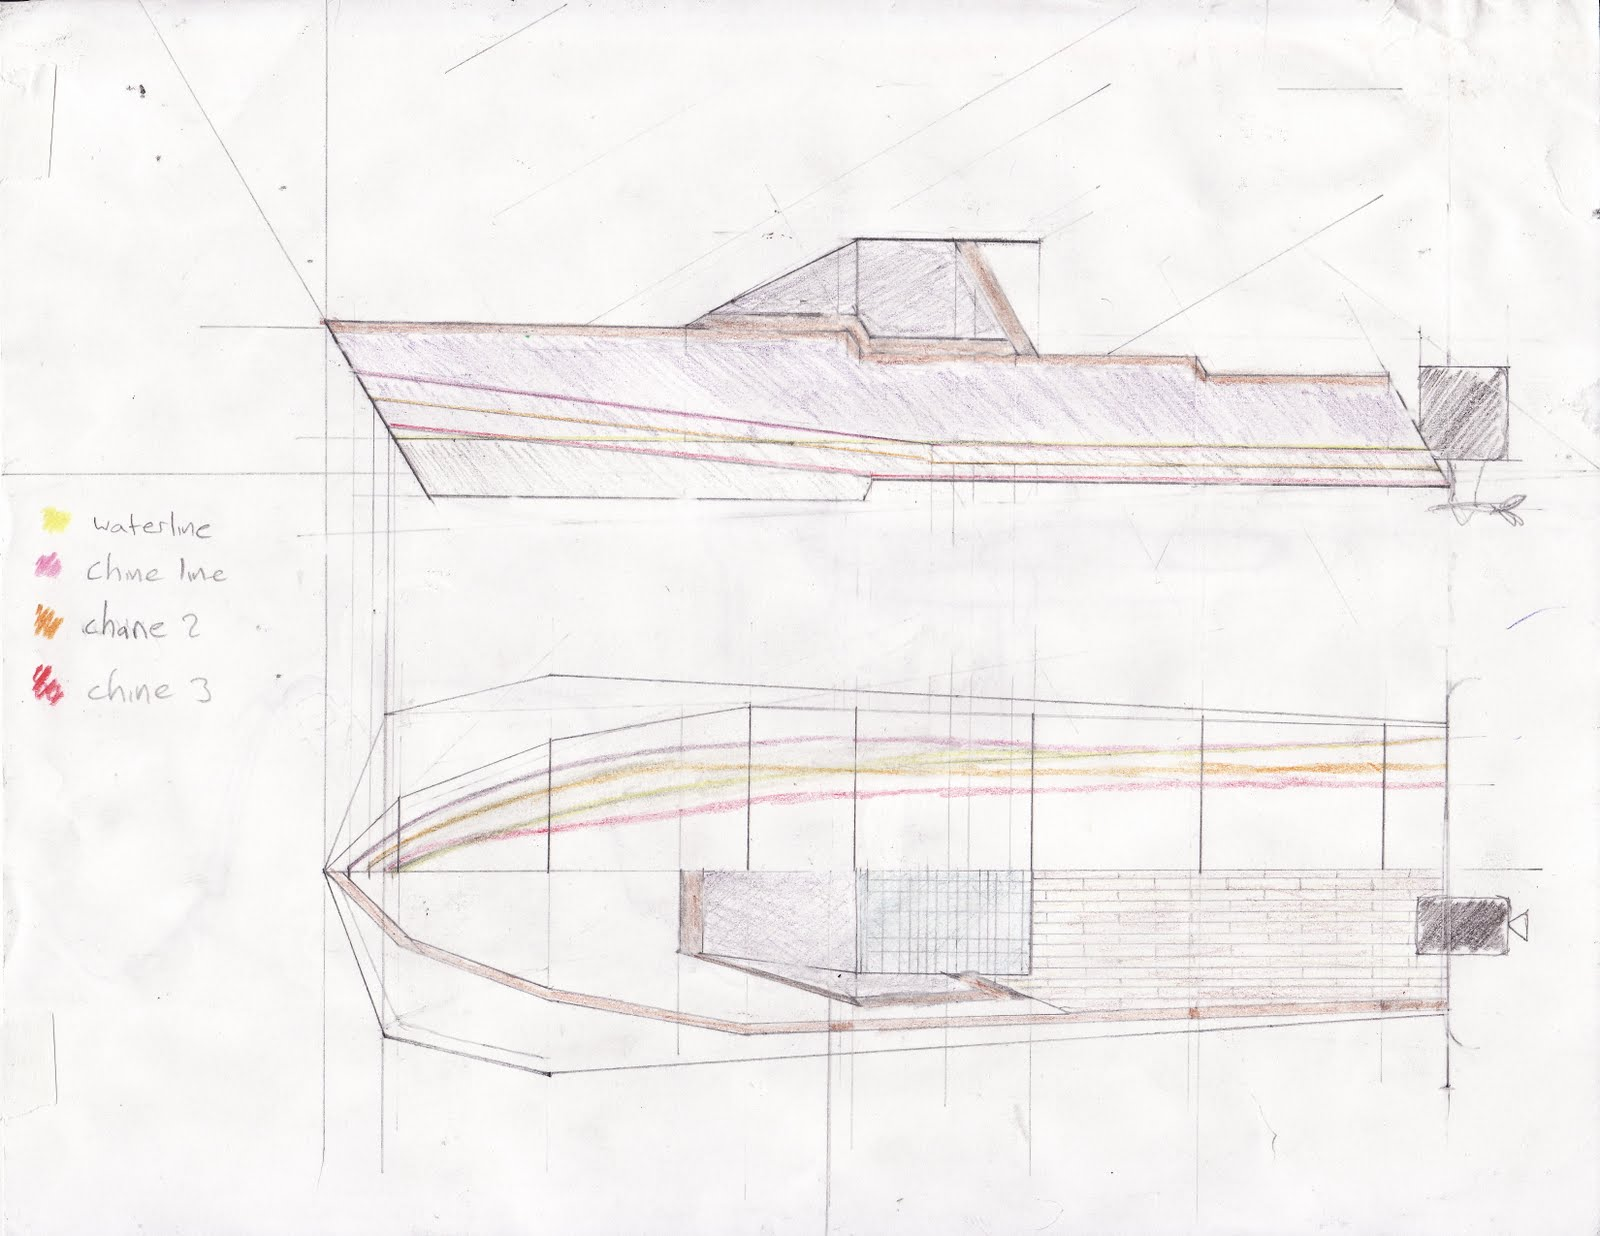 jay mini speed boat plans how to building plans